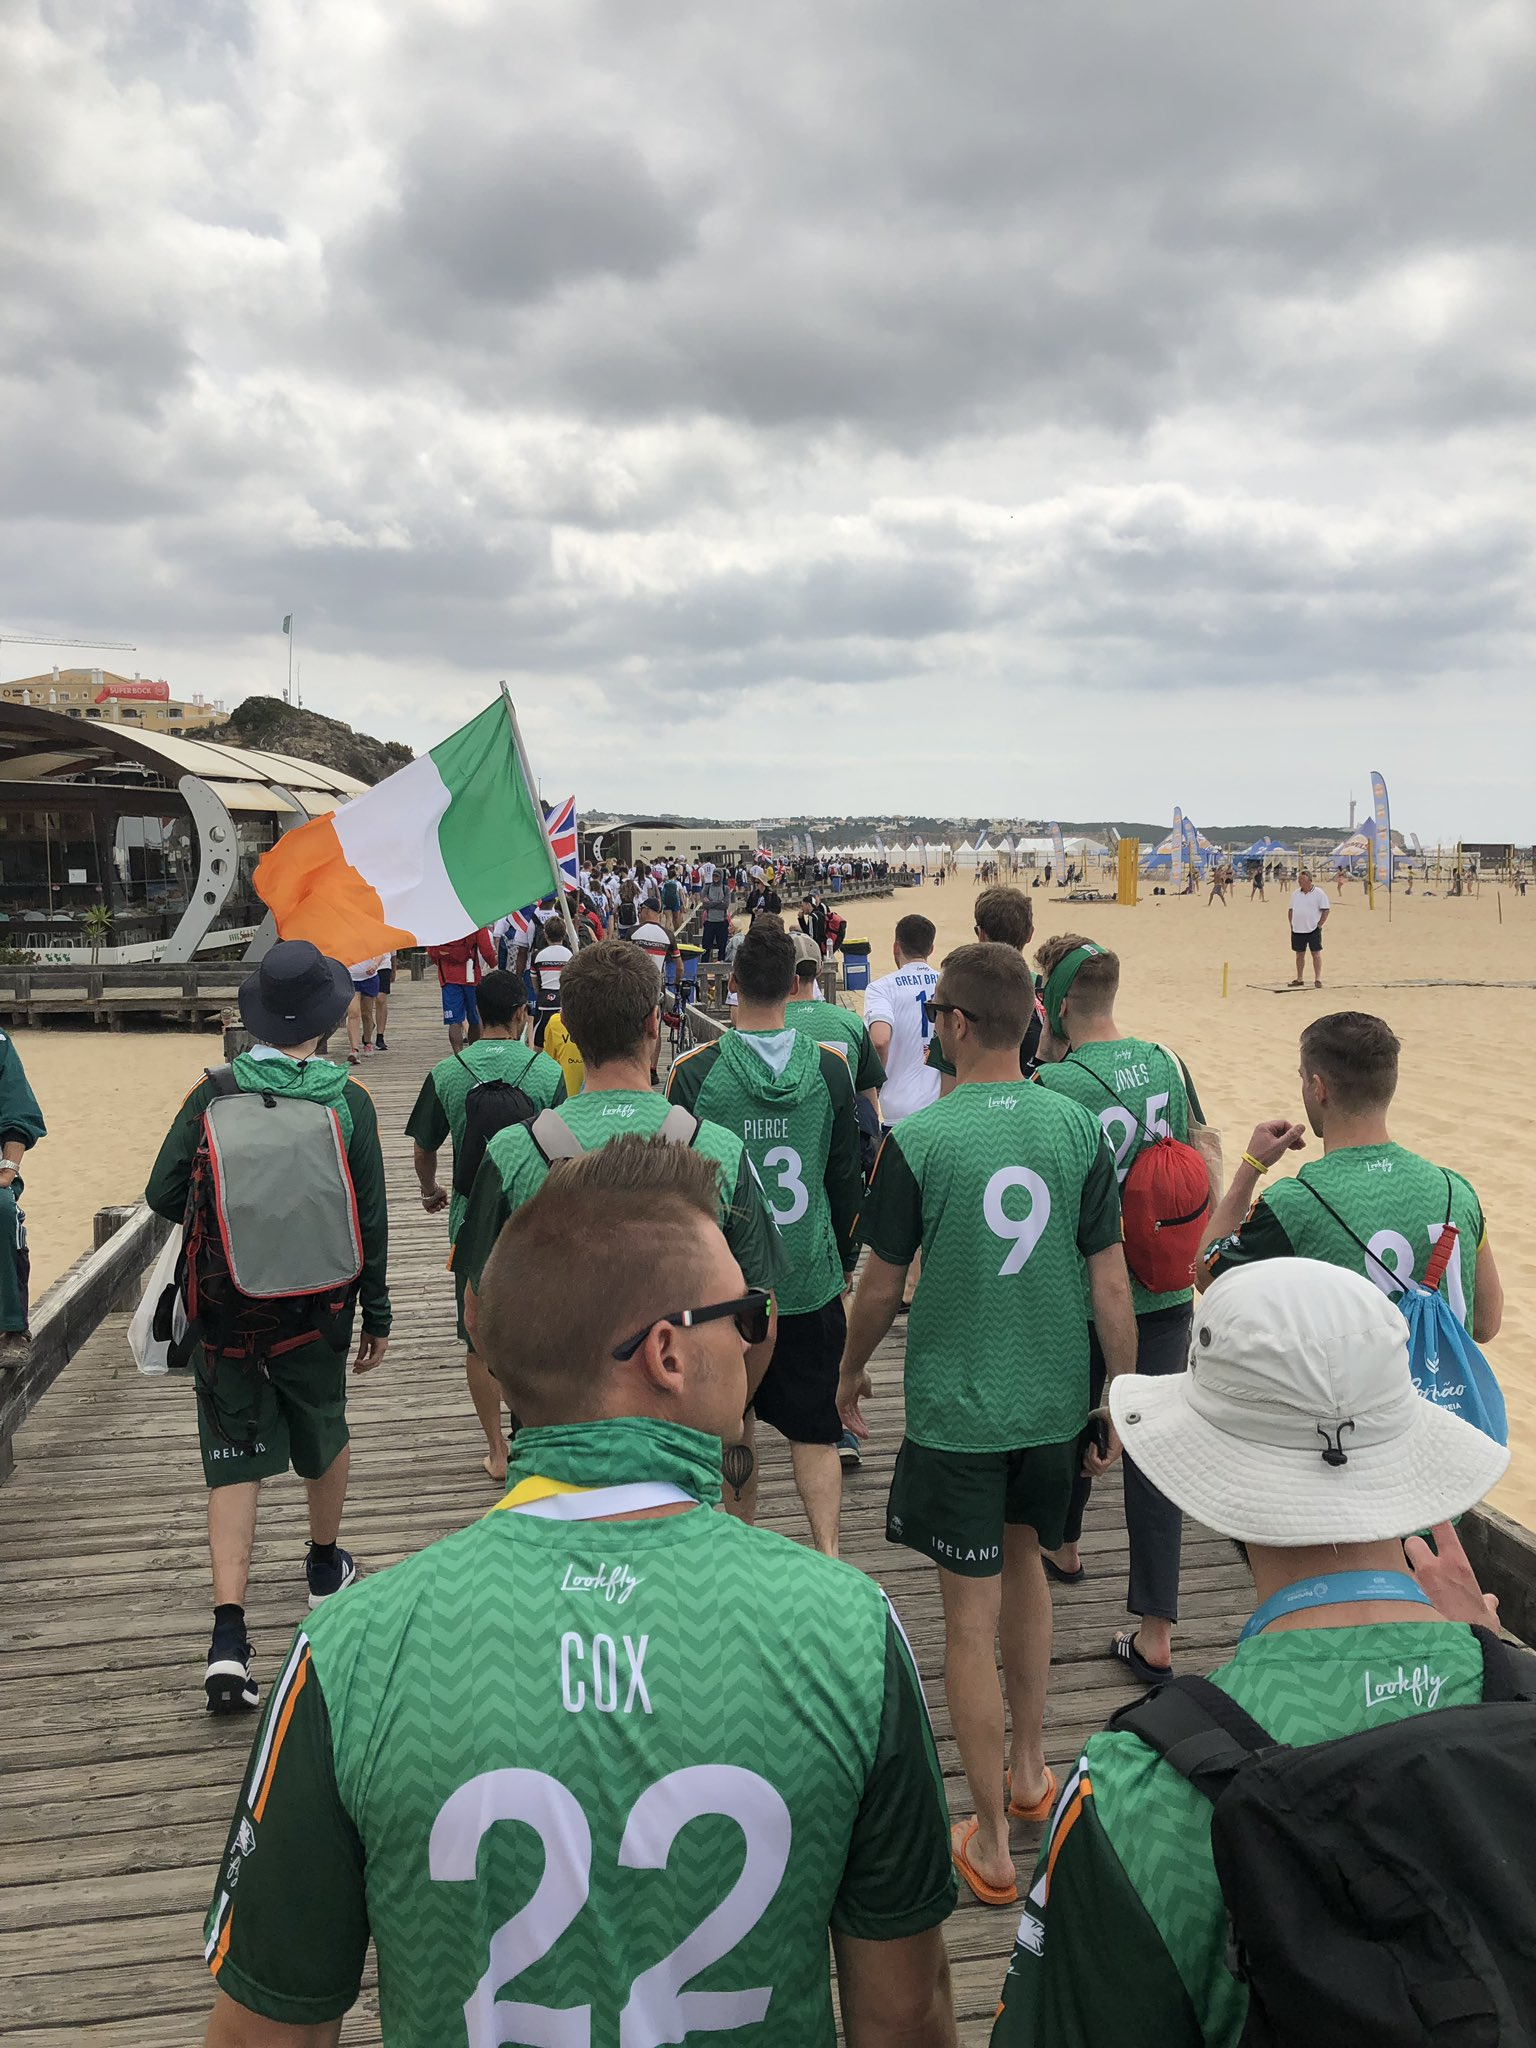 The Opening Ceremony is go! @EBUC2019 @IFDAnews @WorldFlyingDisc #EBUC2019 https://t.co/MvS54EfbPK <a href='https://twitter.com/IRLMastersBeach/status/1125362466354077698/photo/1' target='_blank'>See original »</a>